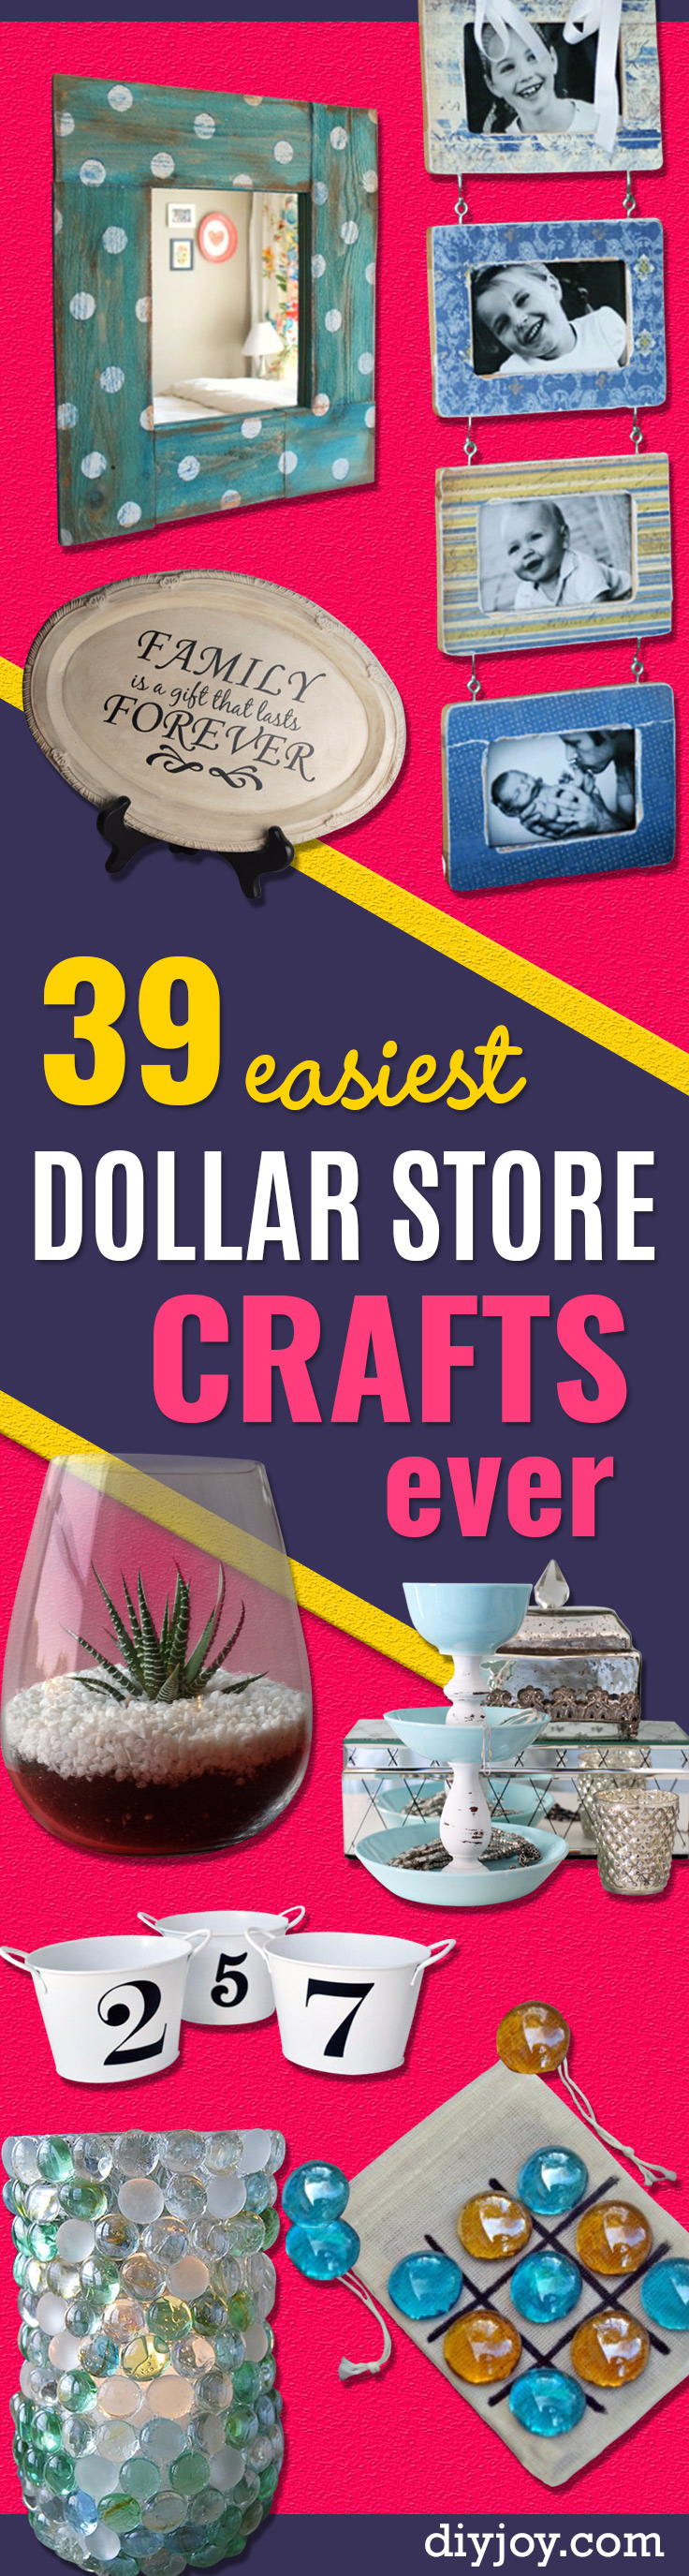 39 Easiest Dollar Store Crafts Ever DIY Joy